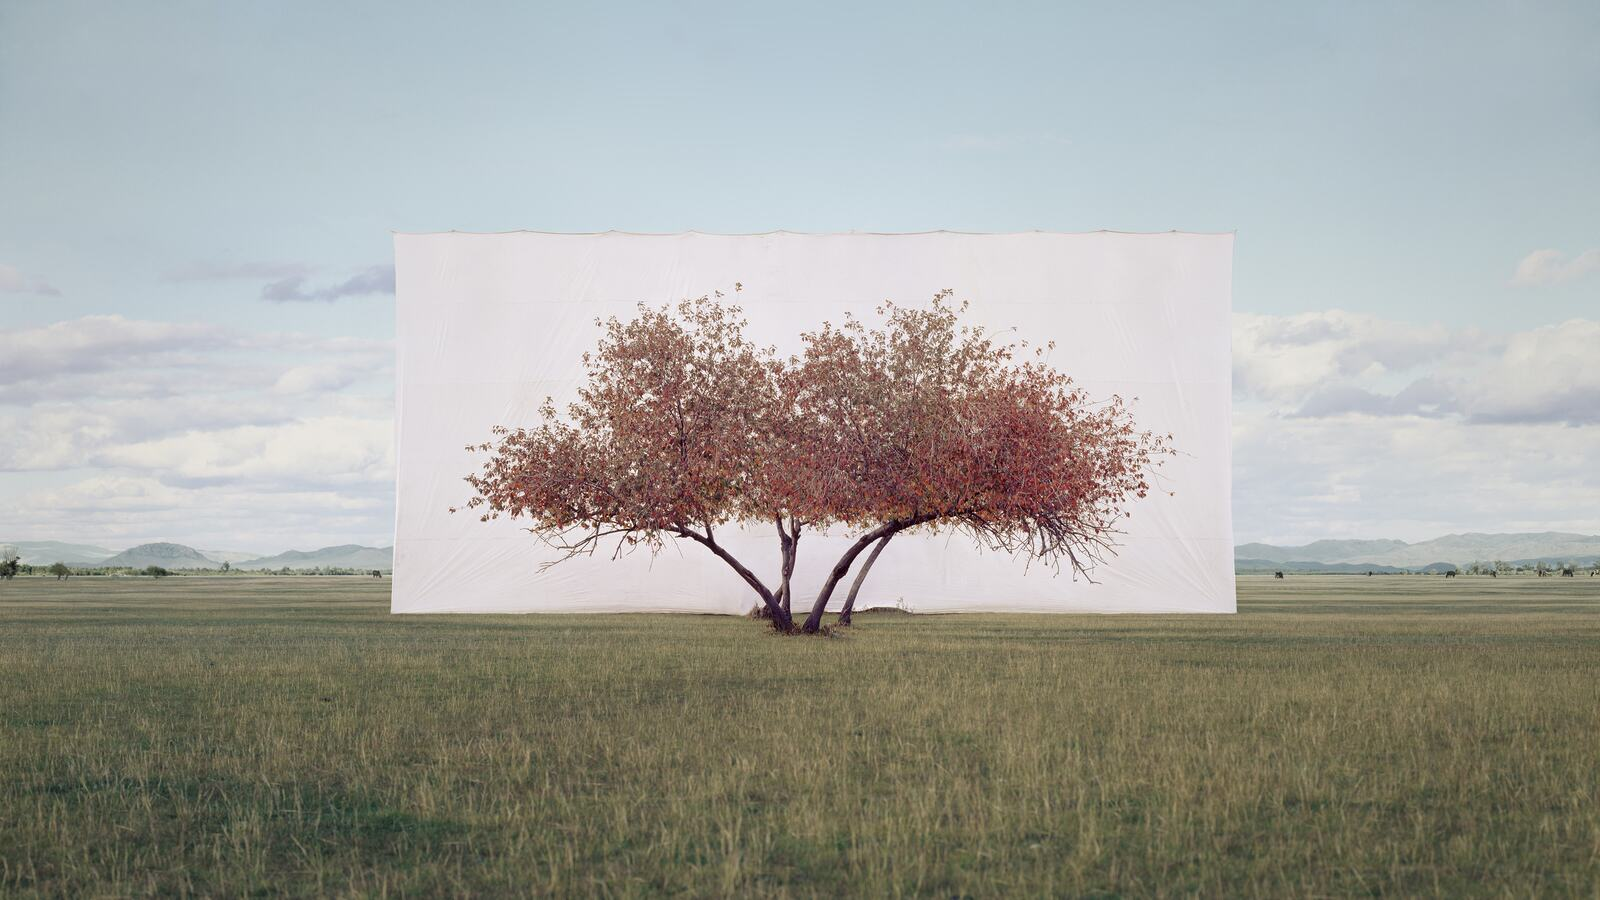 Myoung Ho Lee, Tree... #2, 2012. ©️ the artist. Courtesy Myoung Ho Lee and Gallery Hyundai.